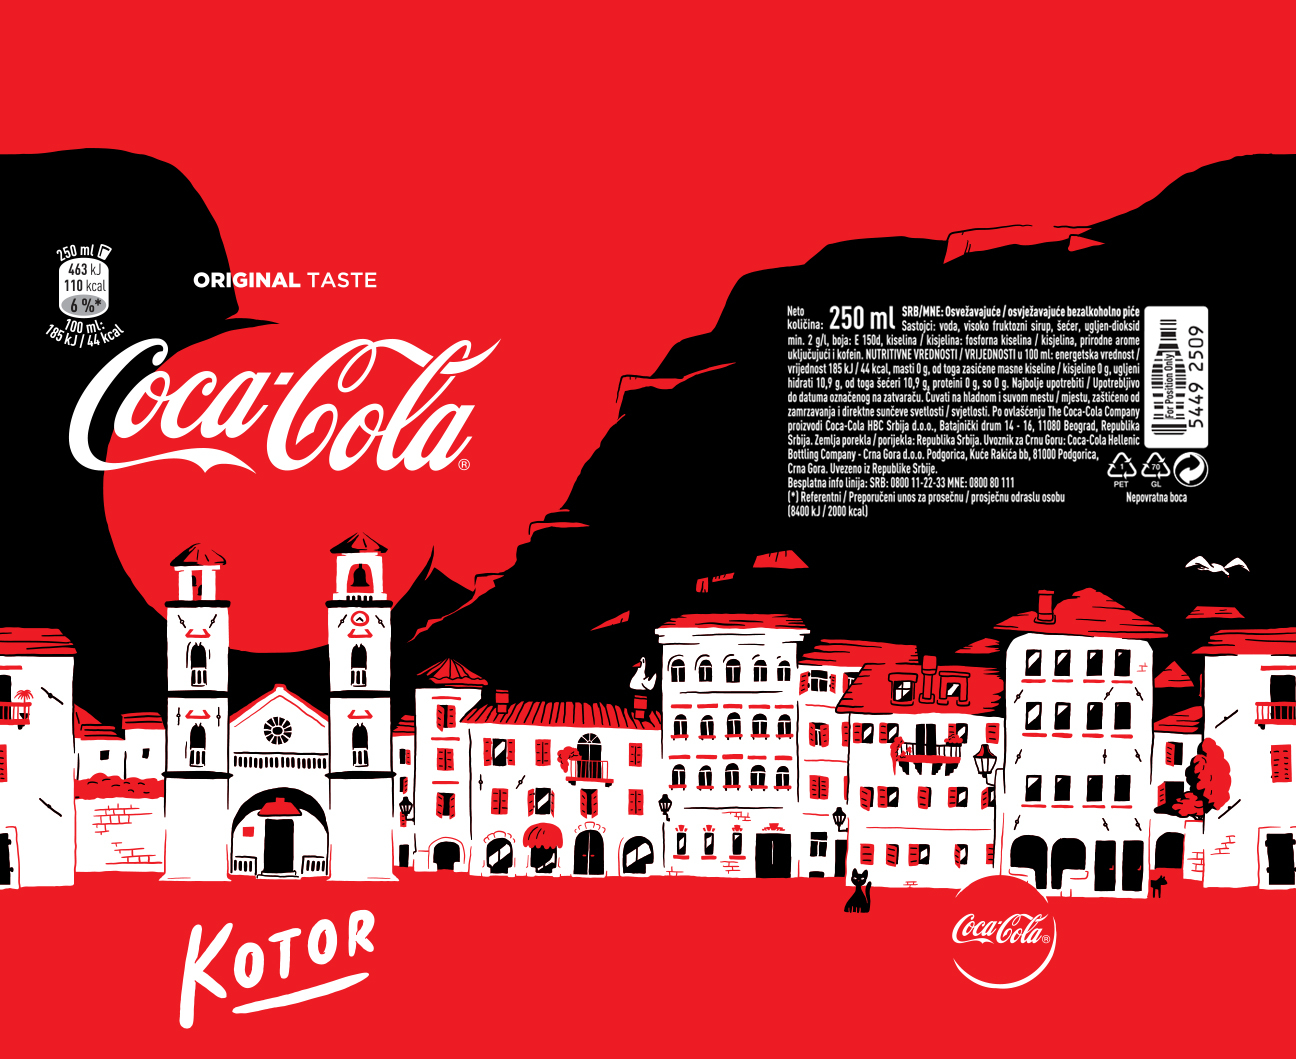 Coca Cola Kotor bottle illustration